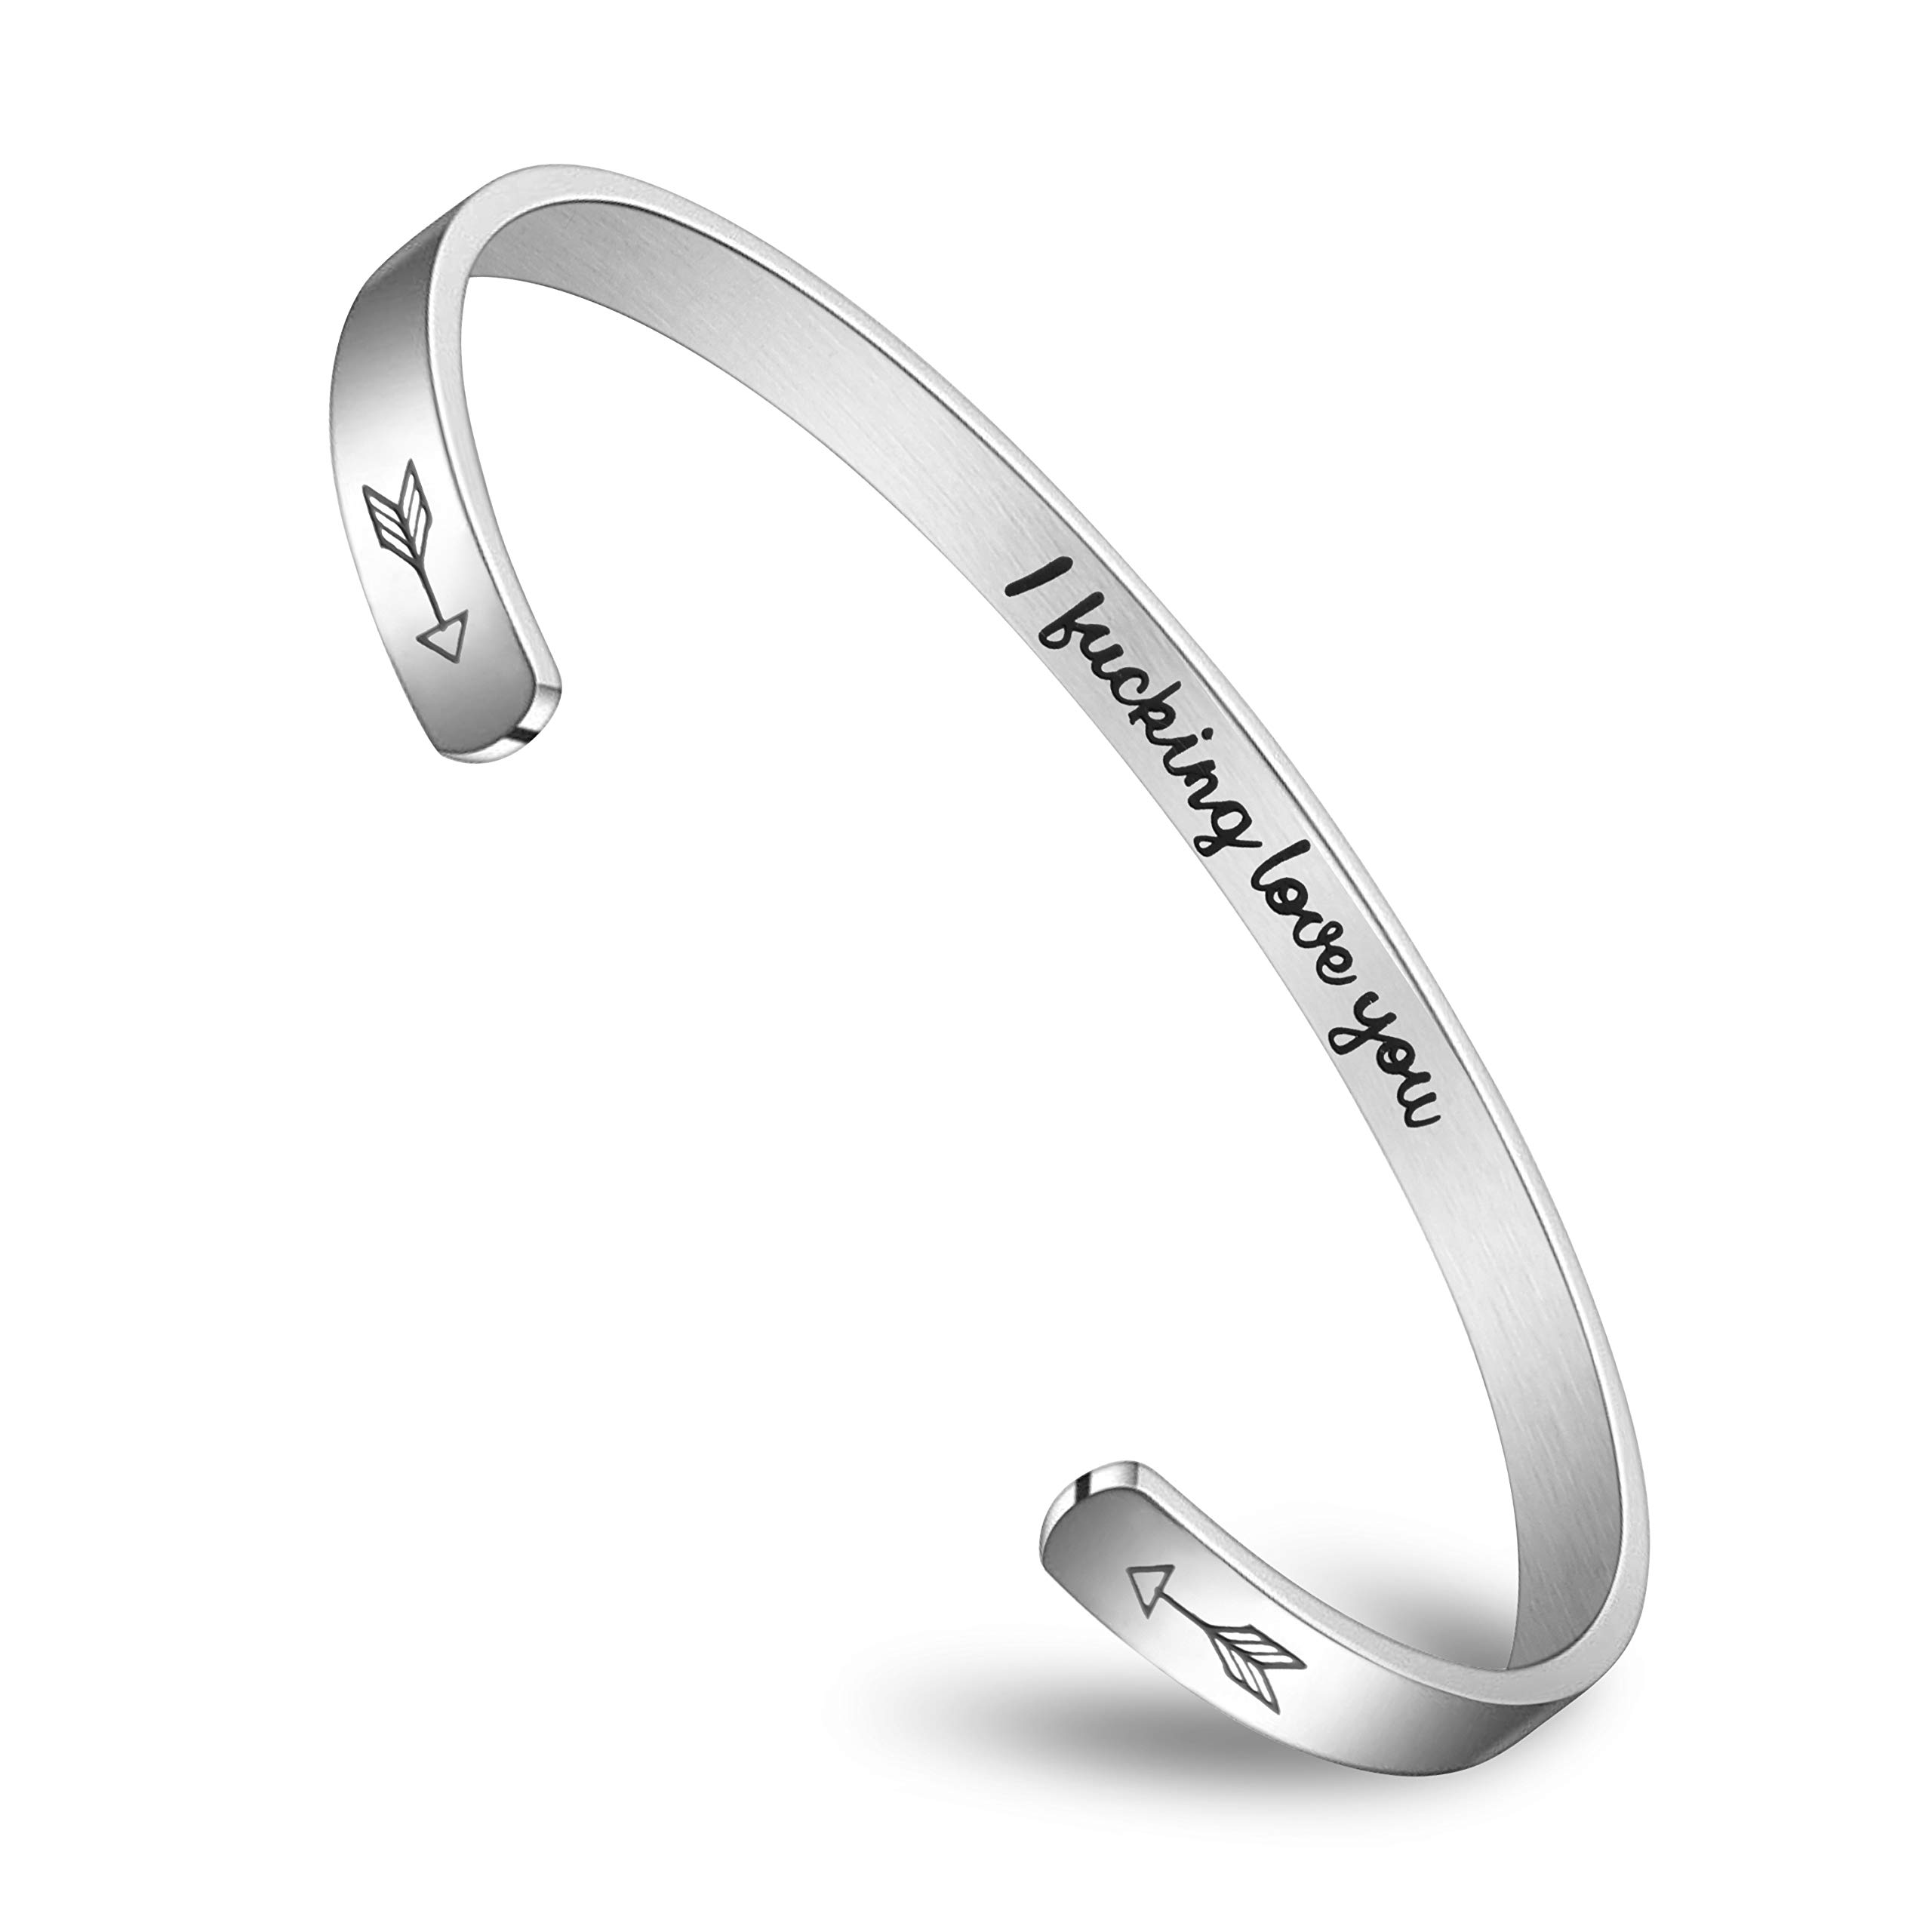 MEXBLING Inspirational Bracelets for Women Girls Birthday Gifts for Her Stainless Steel Engraved Personalized Mantra Bracelets for Women Cuff Bangle Bracelet Come with Gift Box